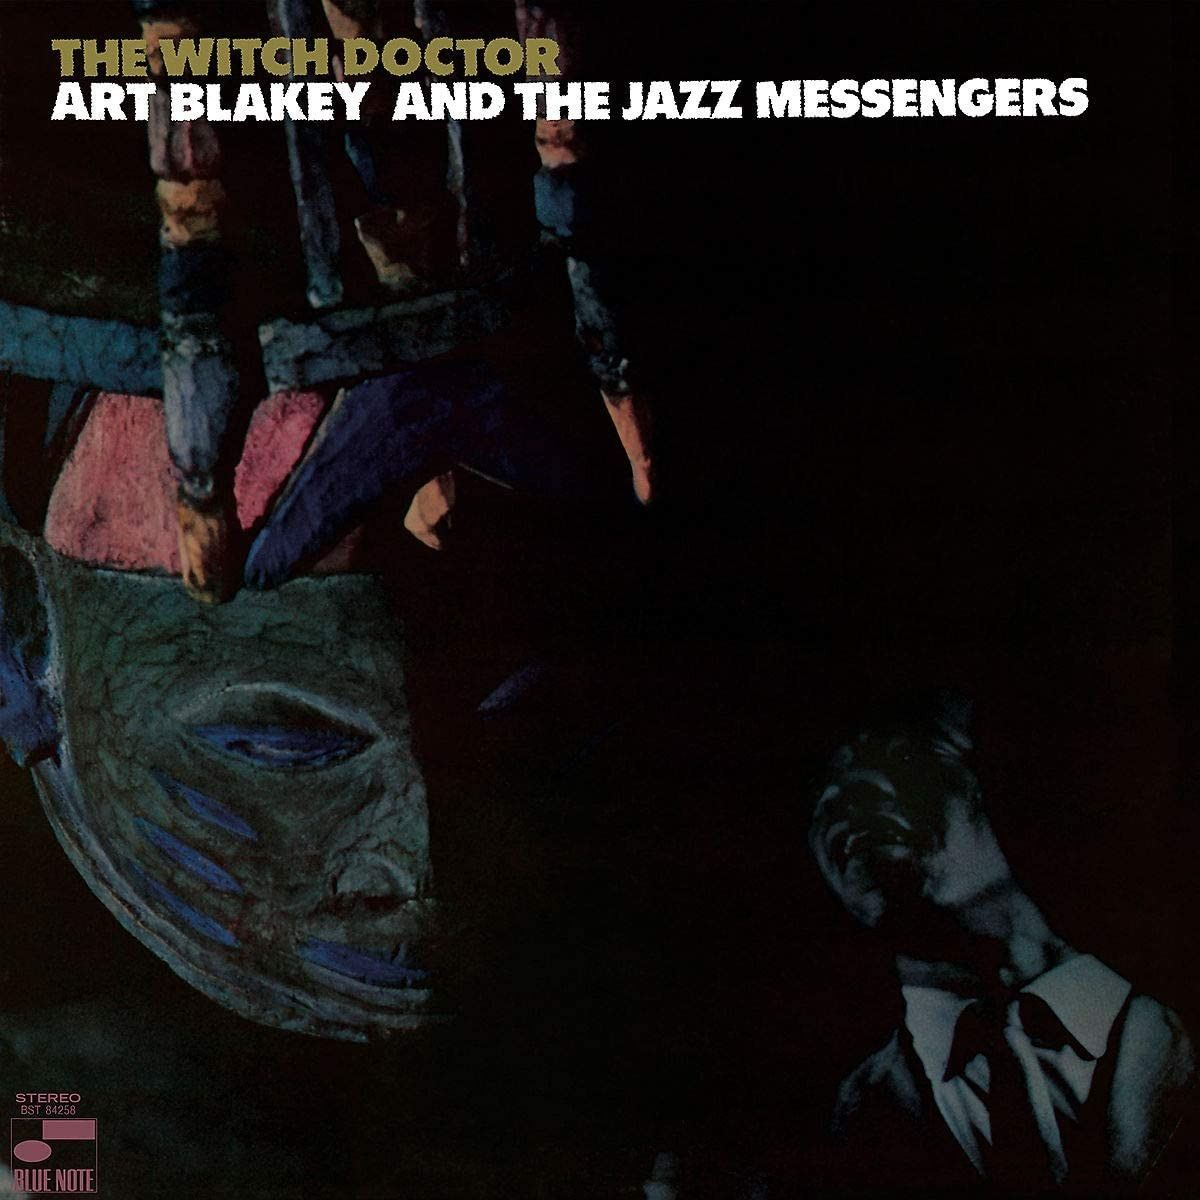 Art Blakey And The Jazz Messengers - The Witch Doctor LP Released 04/06/21